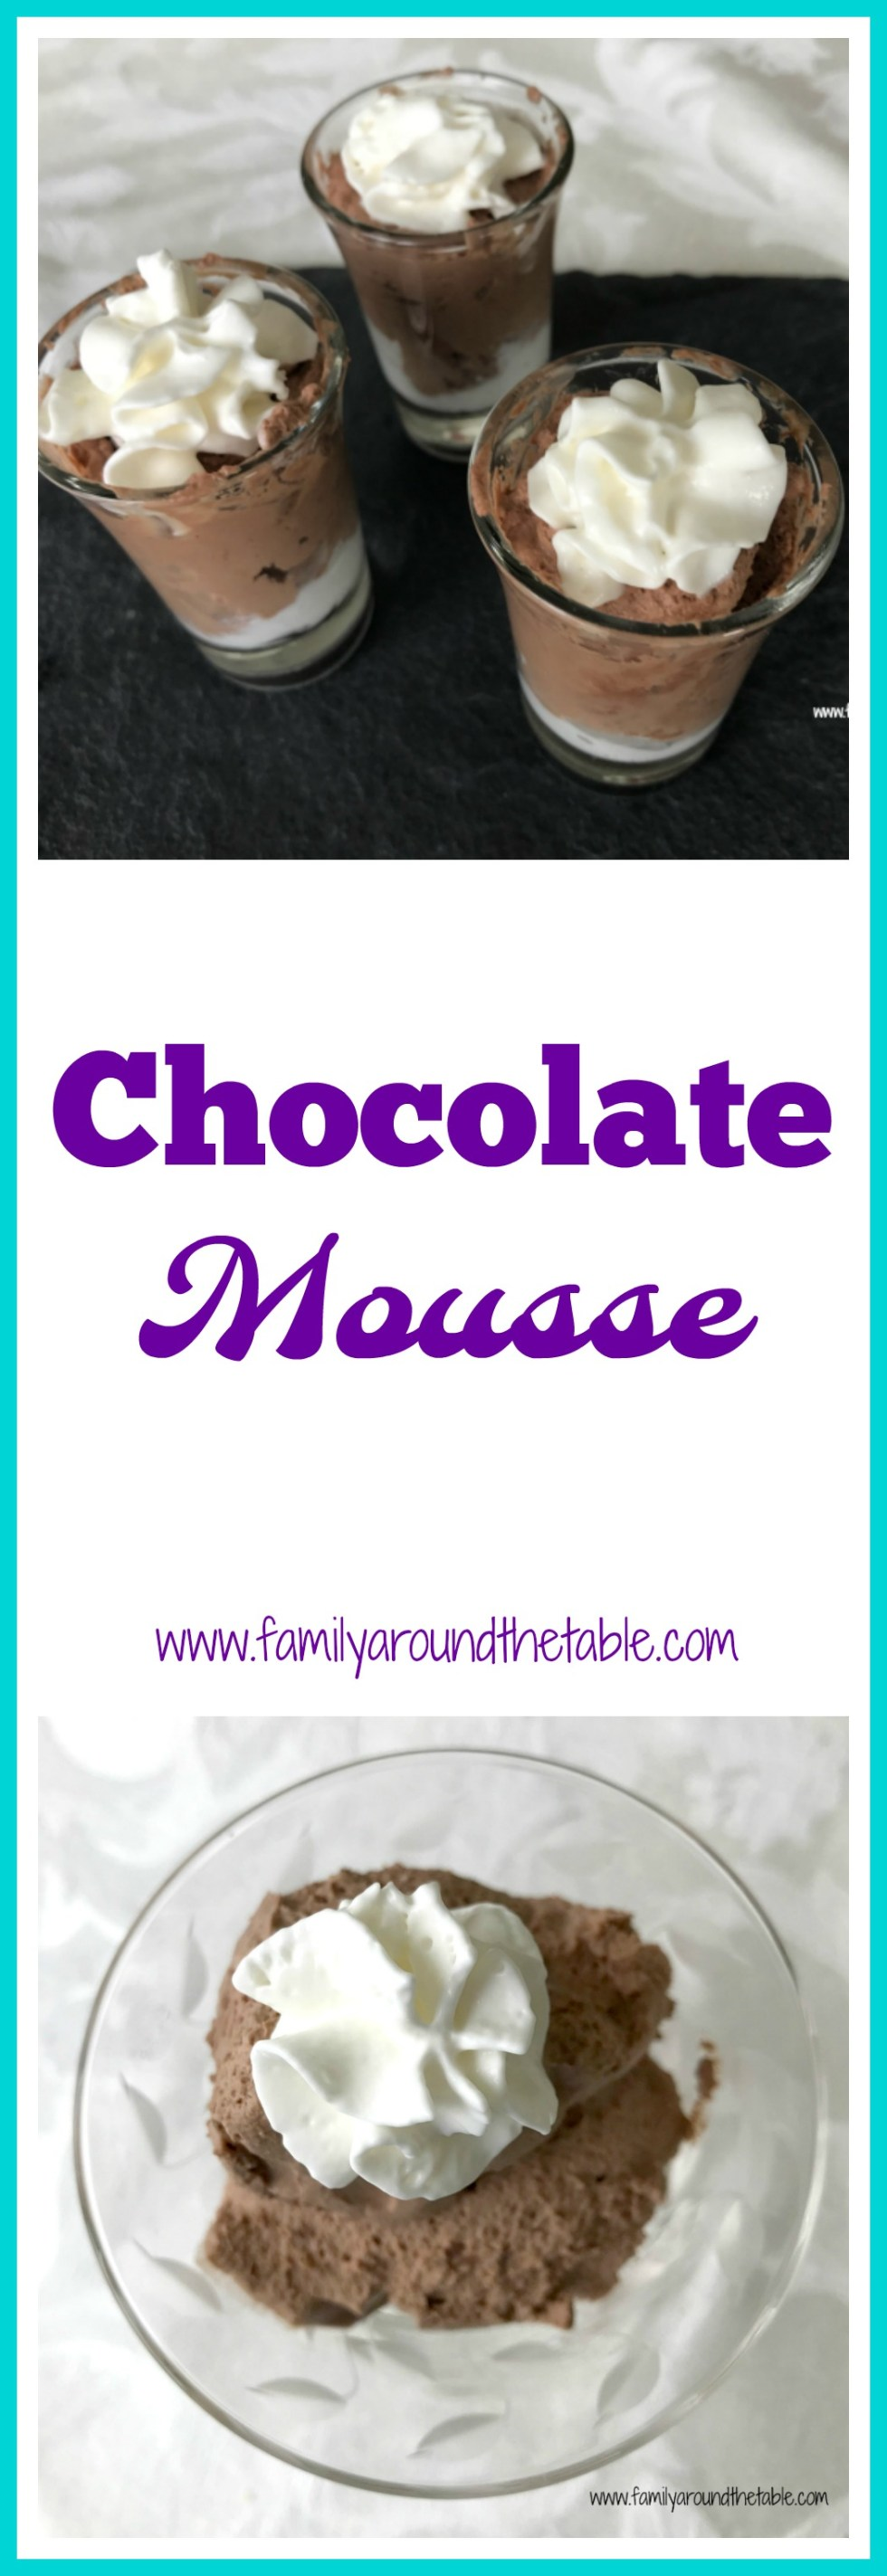 Chocolate mousse is perfect for entertaining. Serve in shot glasses for a dessert buffet